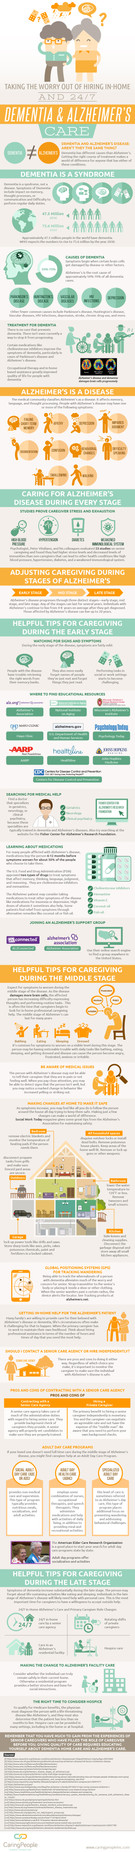 Taking The Worry Out of Hiring in Home and 247 Dementia & Alzheimer's Care